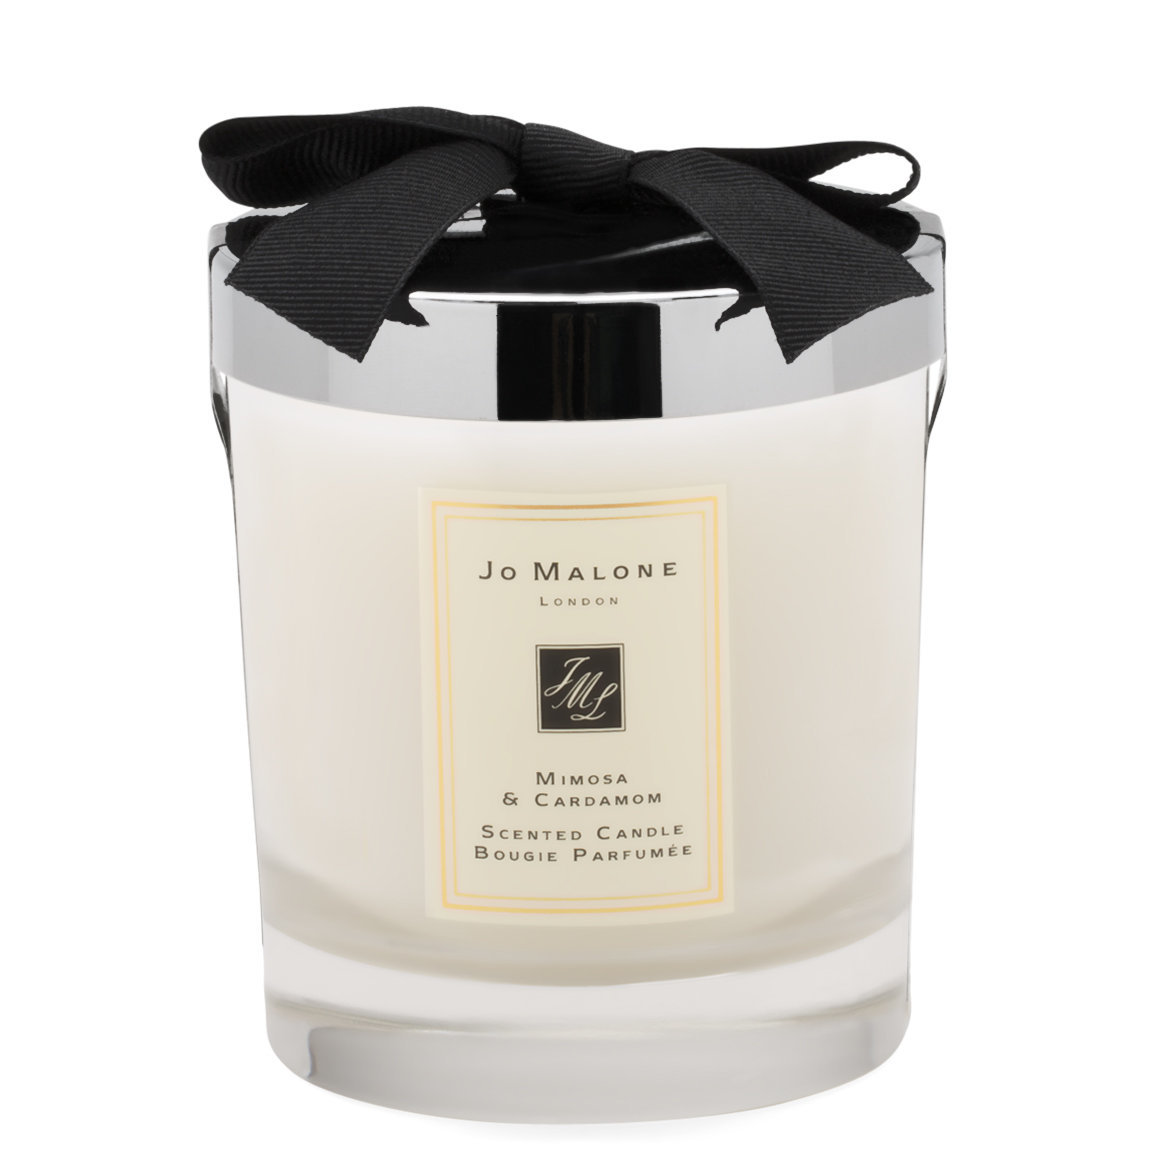 Jo Malone London Mimosa & Cardamom Scented Candle product swatch.